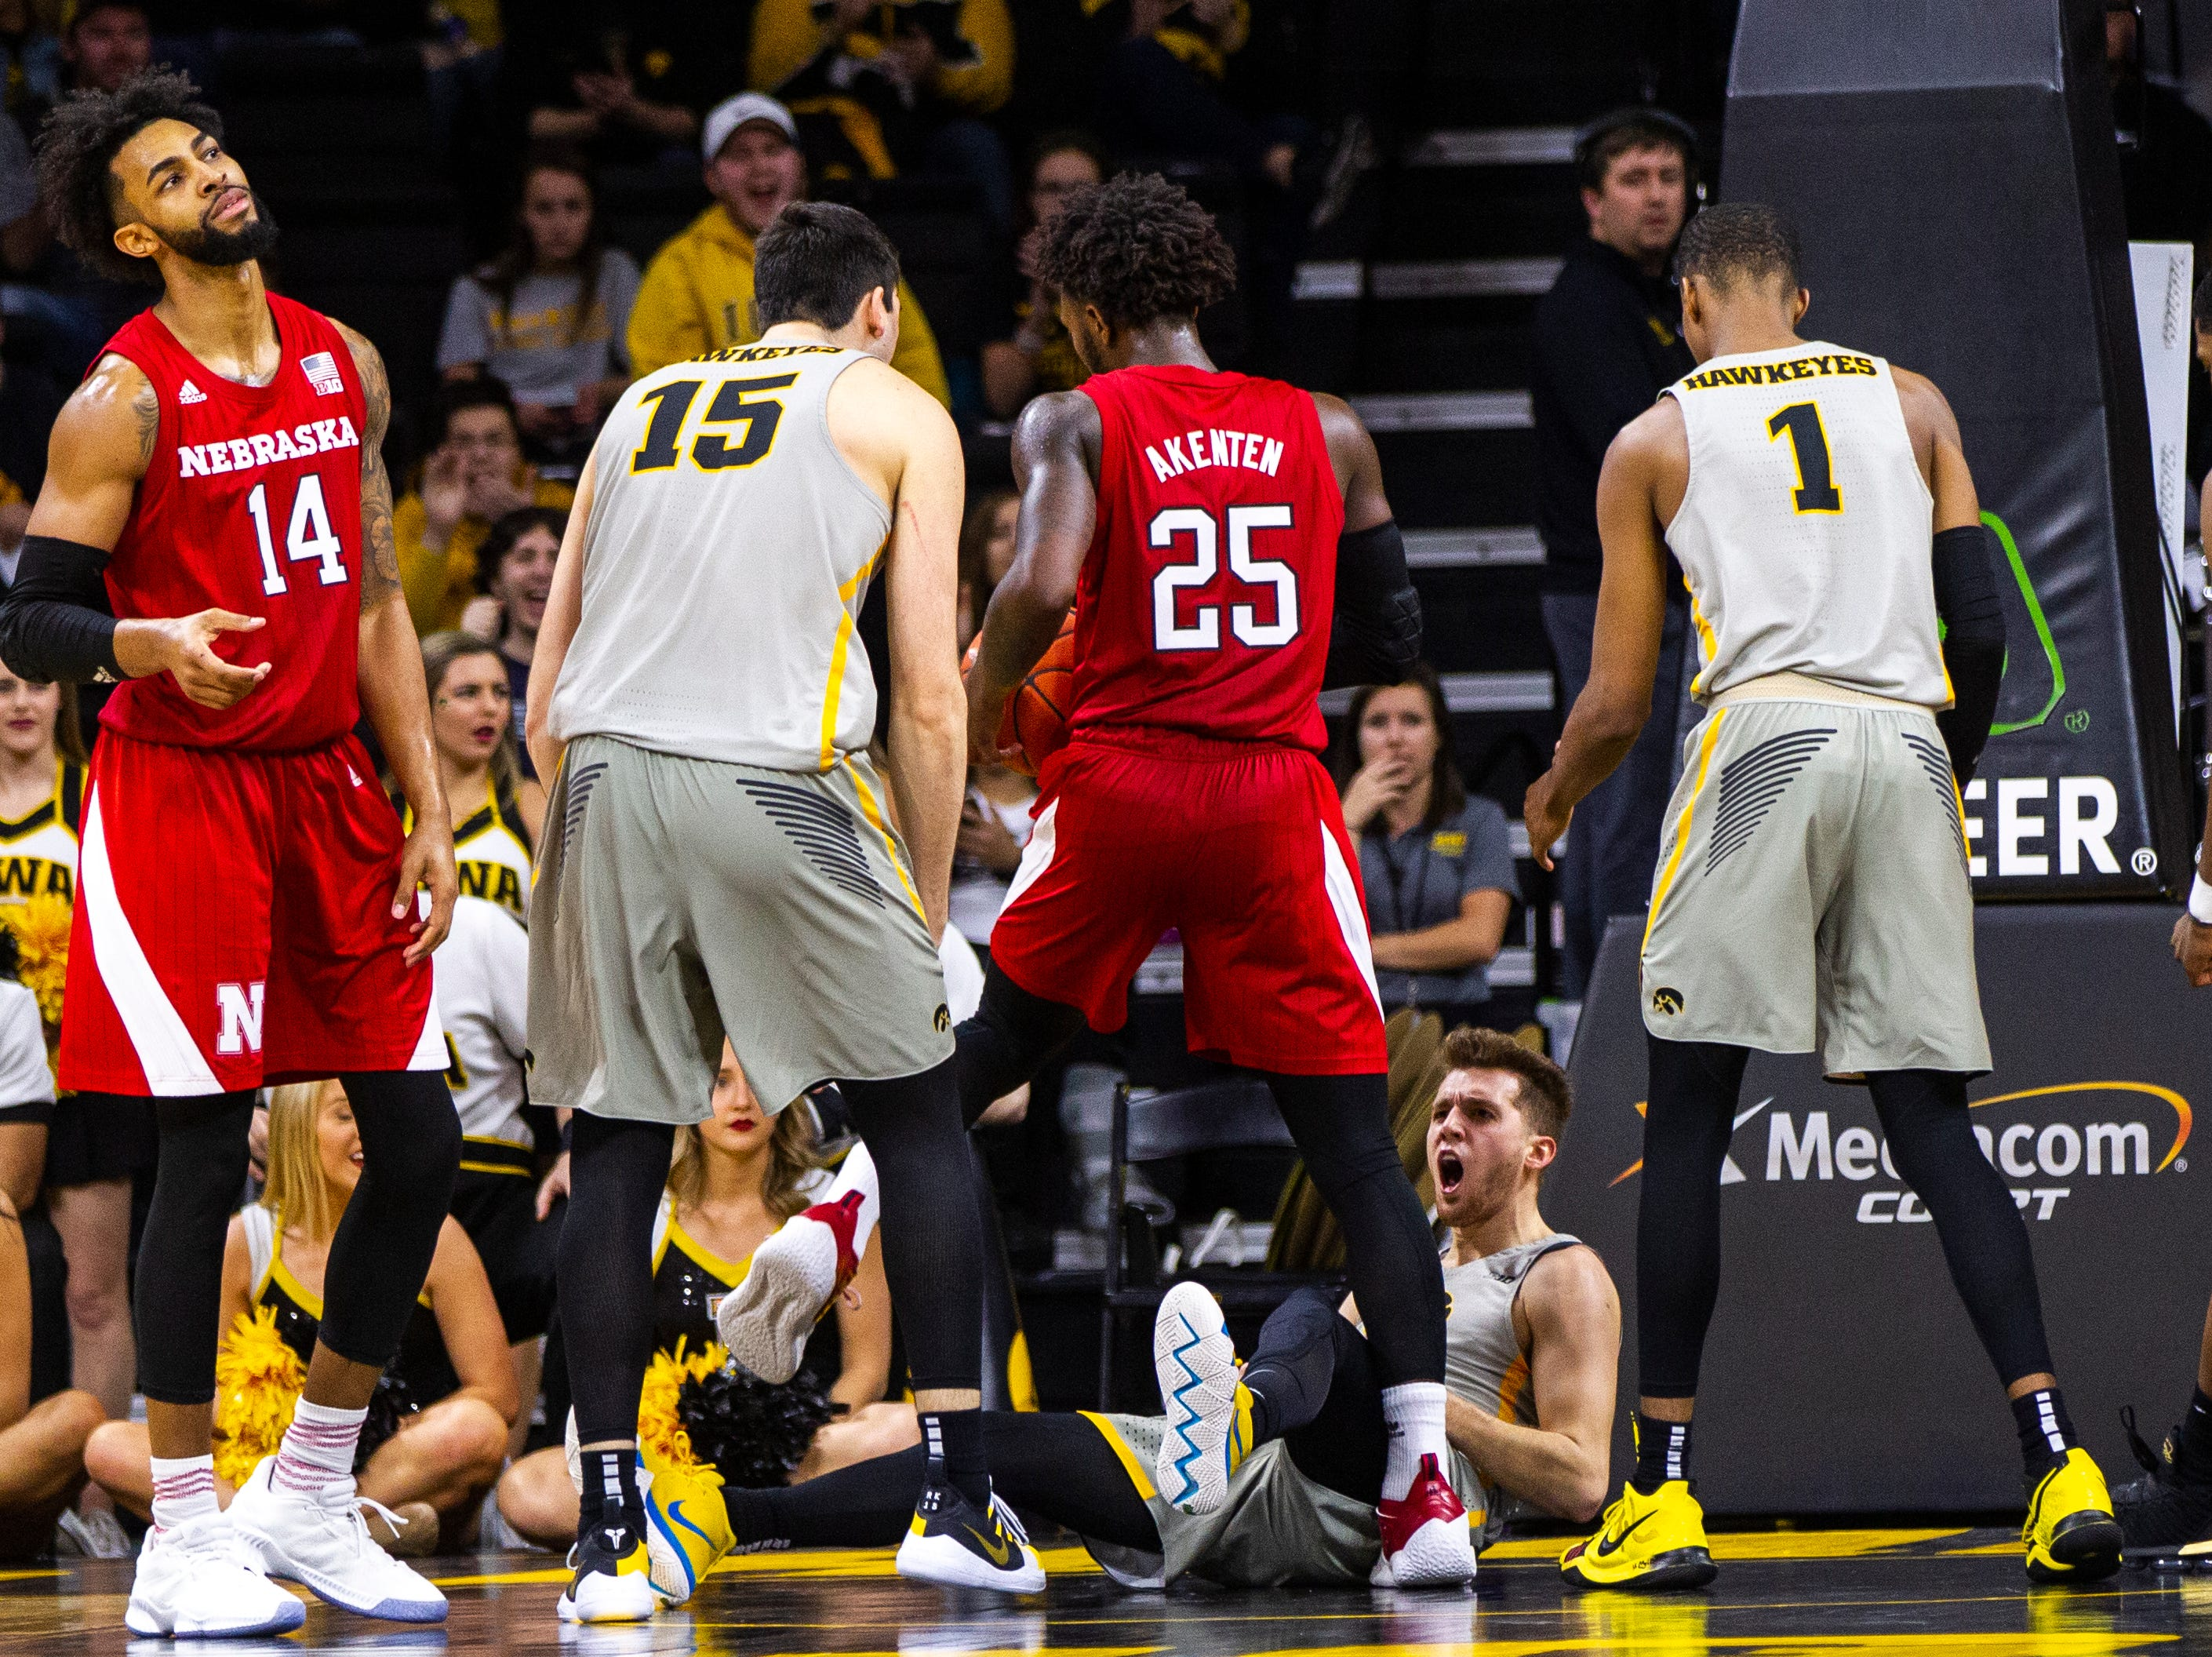 Iowa guard Jordan Bohannon (3) reacts after taking a charge while Nebraska forward Isaac Copeland Jr. (14) reacts during a NCAA Big Ten Conference men's basketball game on Sunday, Jan. 6, 2019, at the Carver-Hawkeye Arena in Iowa City, Iowa.